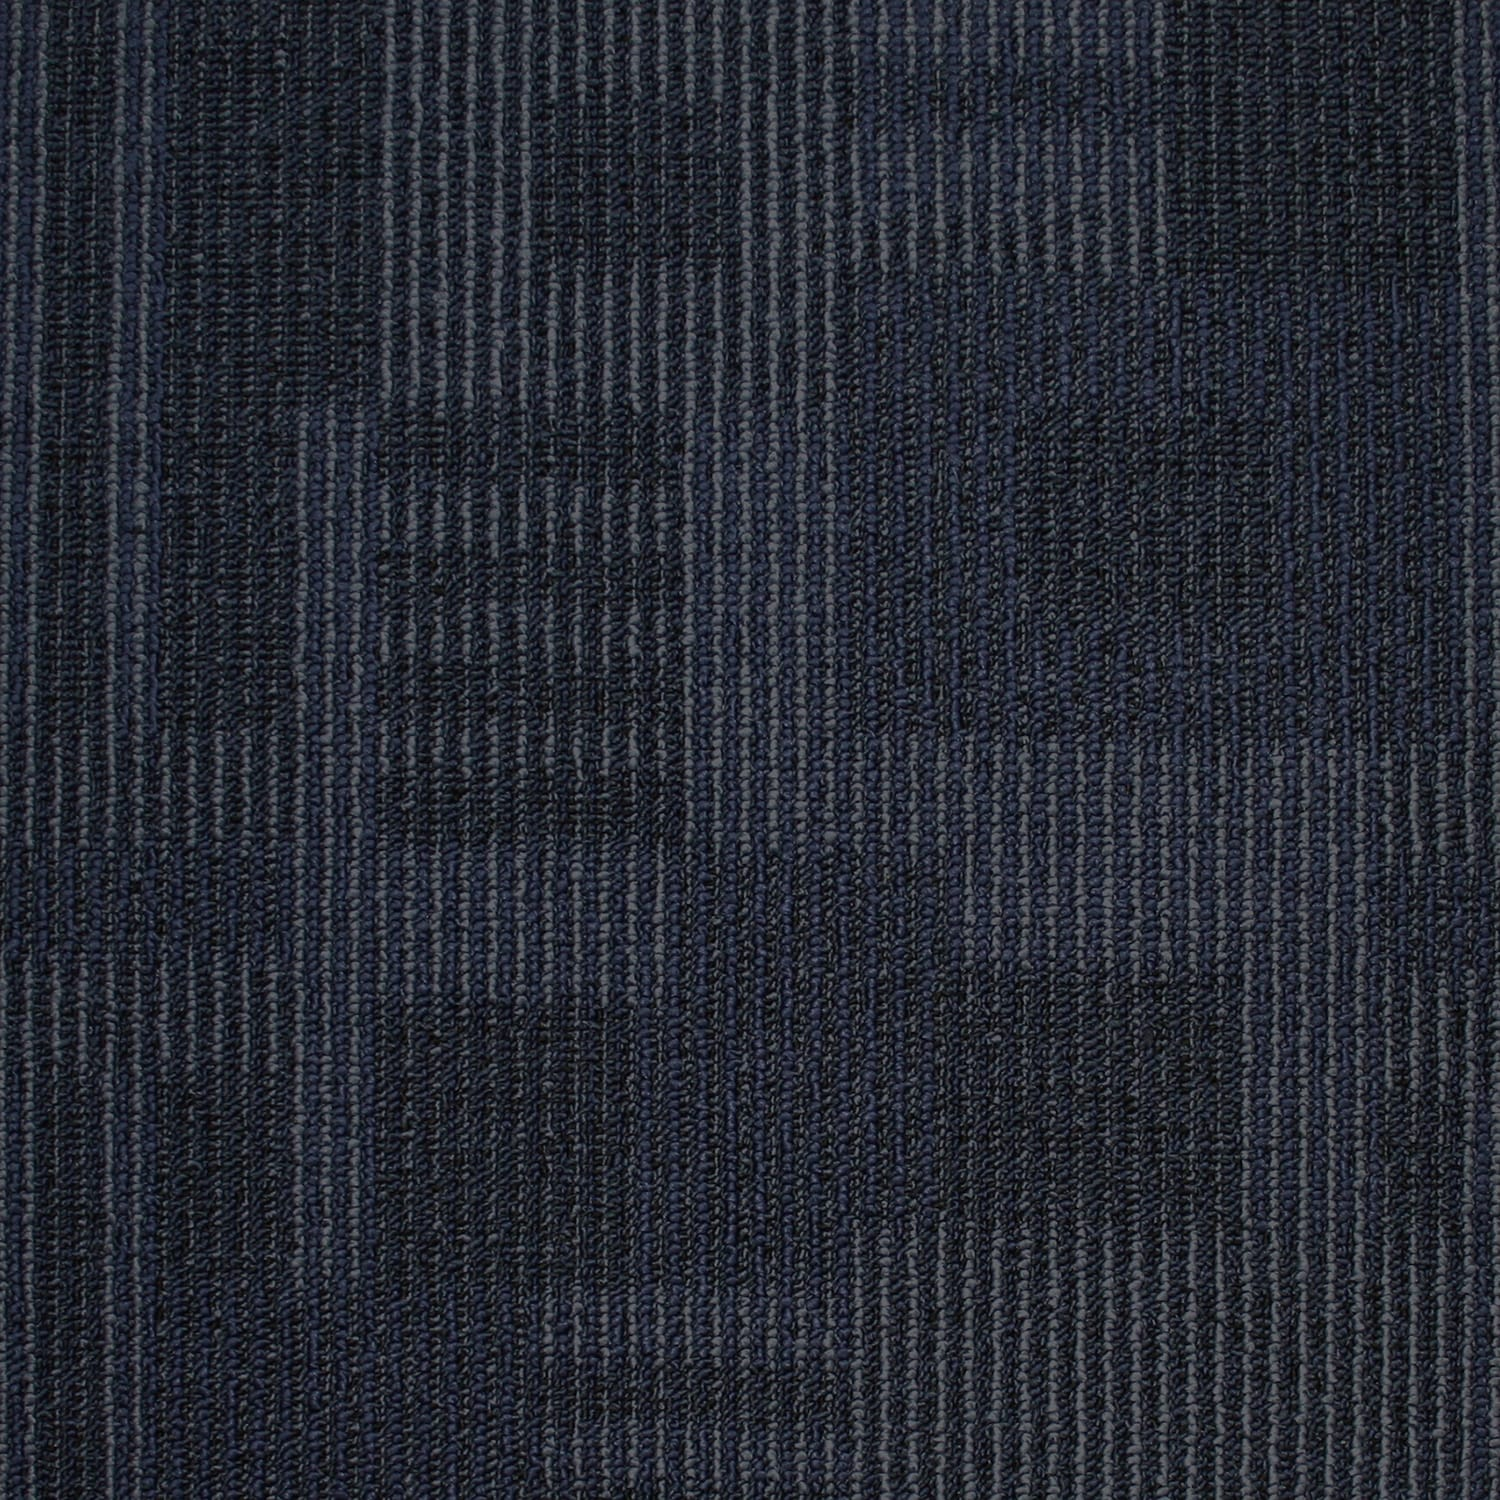 Dimensions08 blueprint blues blacks polypropylene square eurobac dimensions08 blueprint blues blacks polypropylene square eurobac stain proof no exceptions commercial wear backing performance malvernweather Images